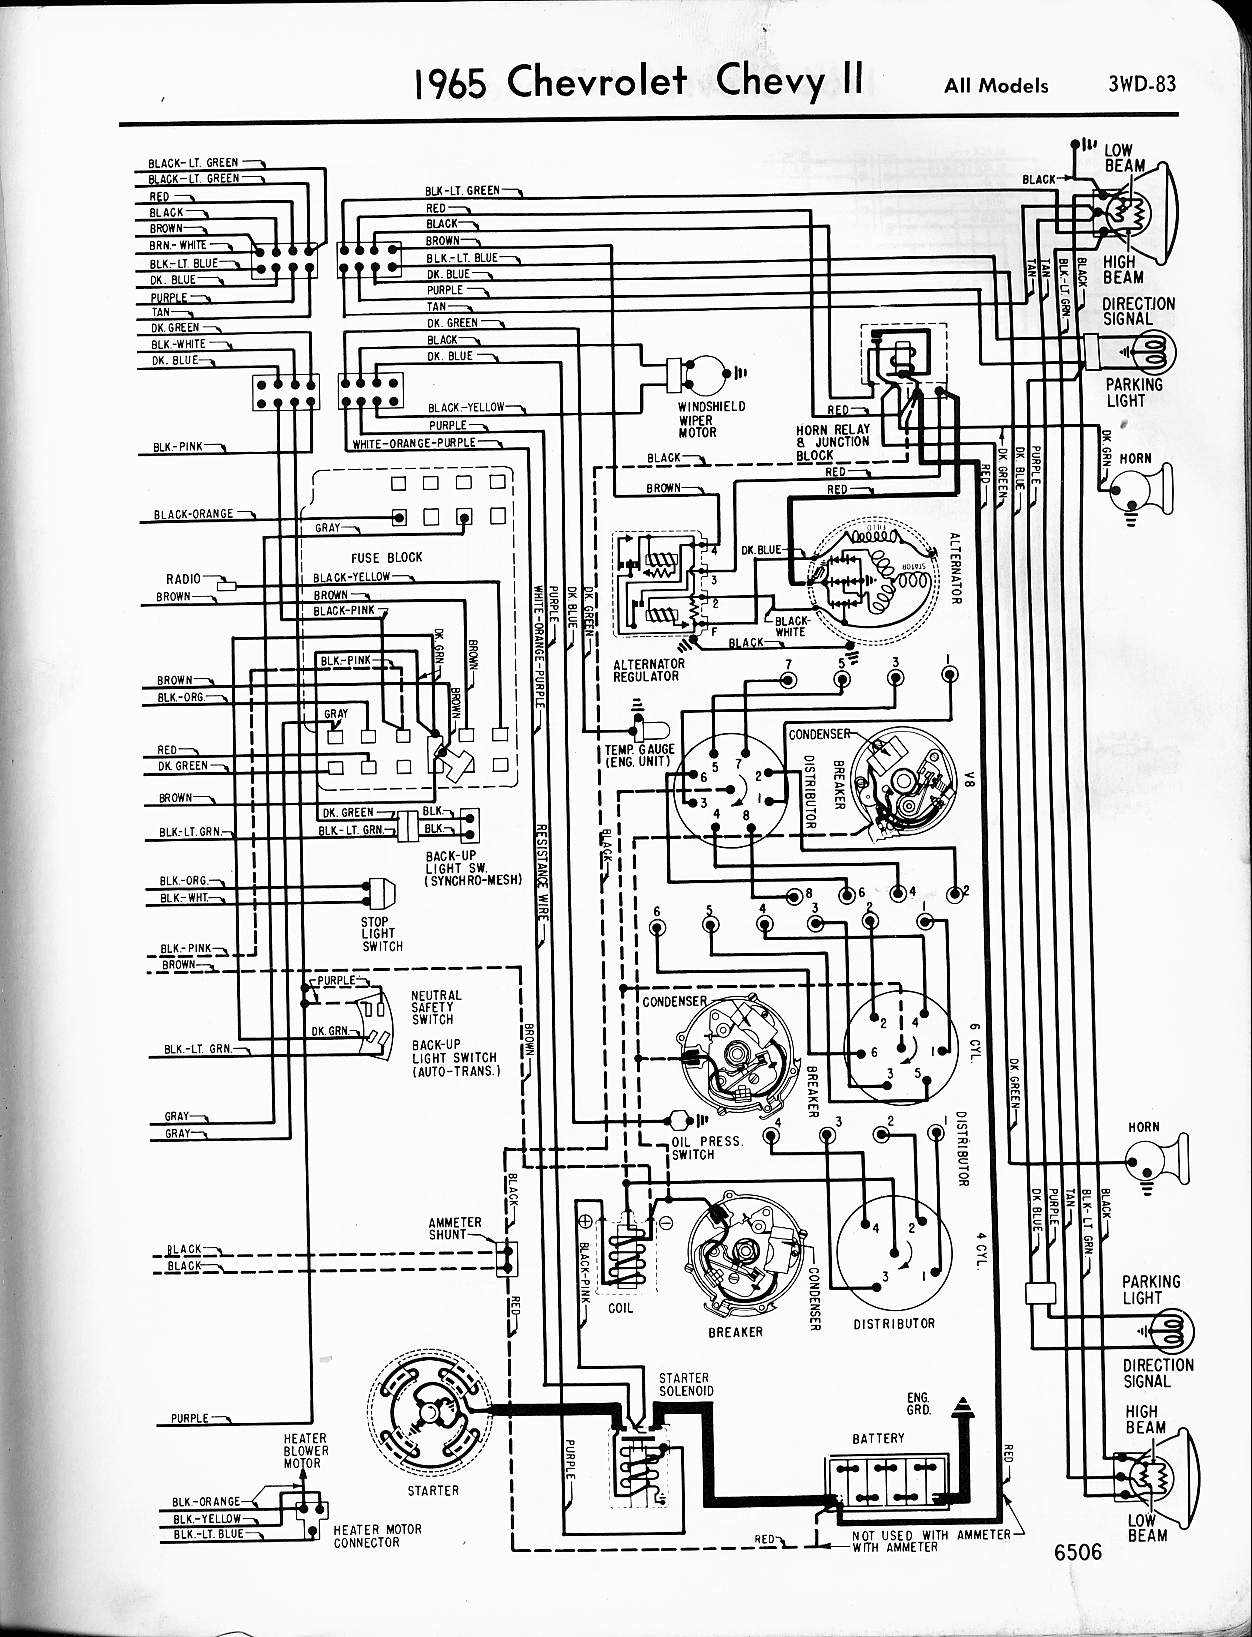 MWireChev65_3WD 083 57 65 chevy wiring diagrams 1965 c10 wiring diagram at mifinder.co